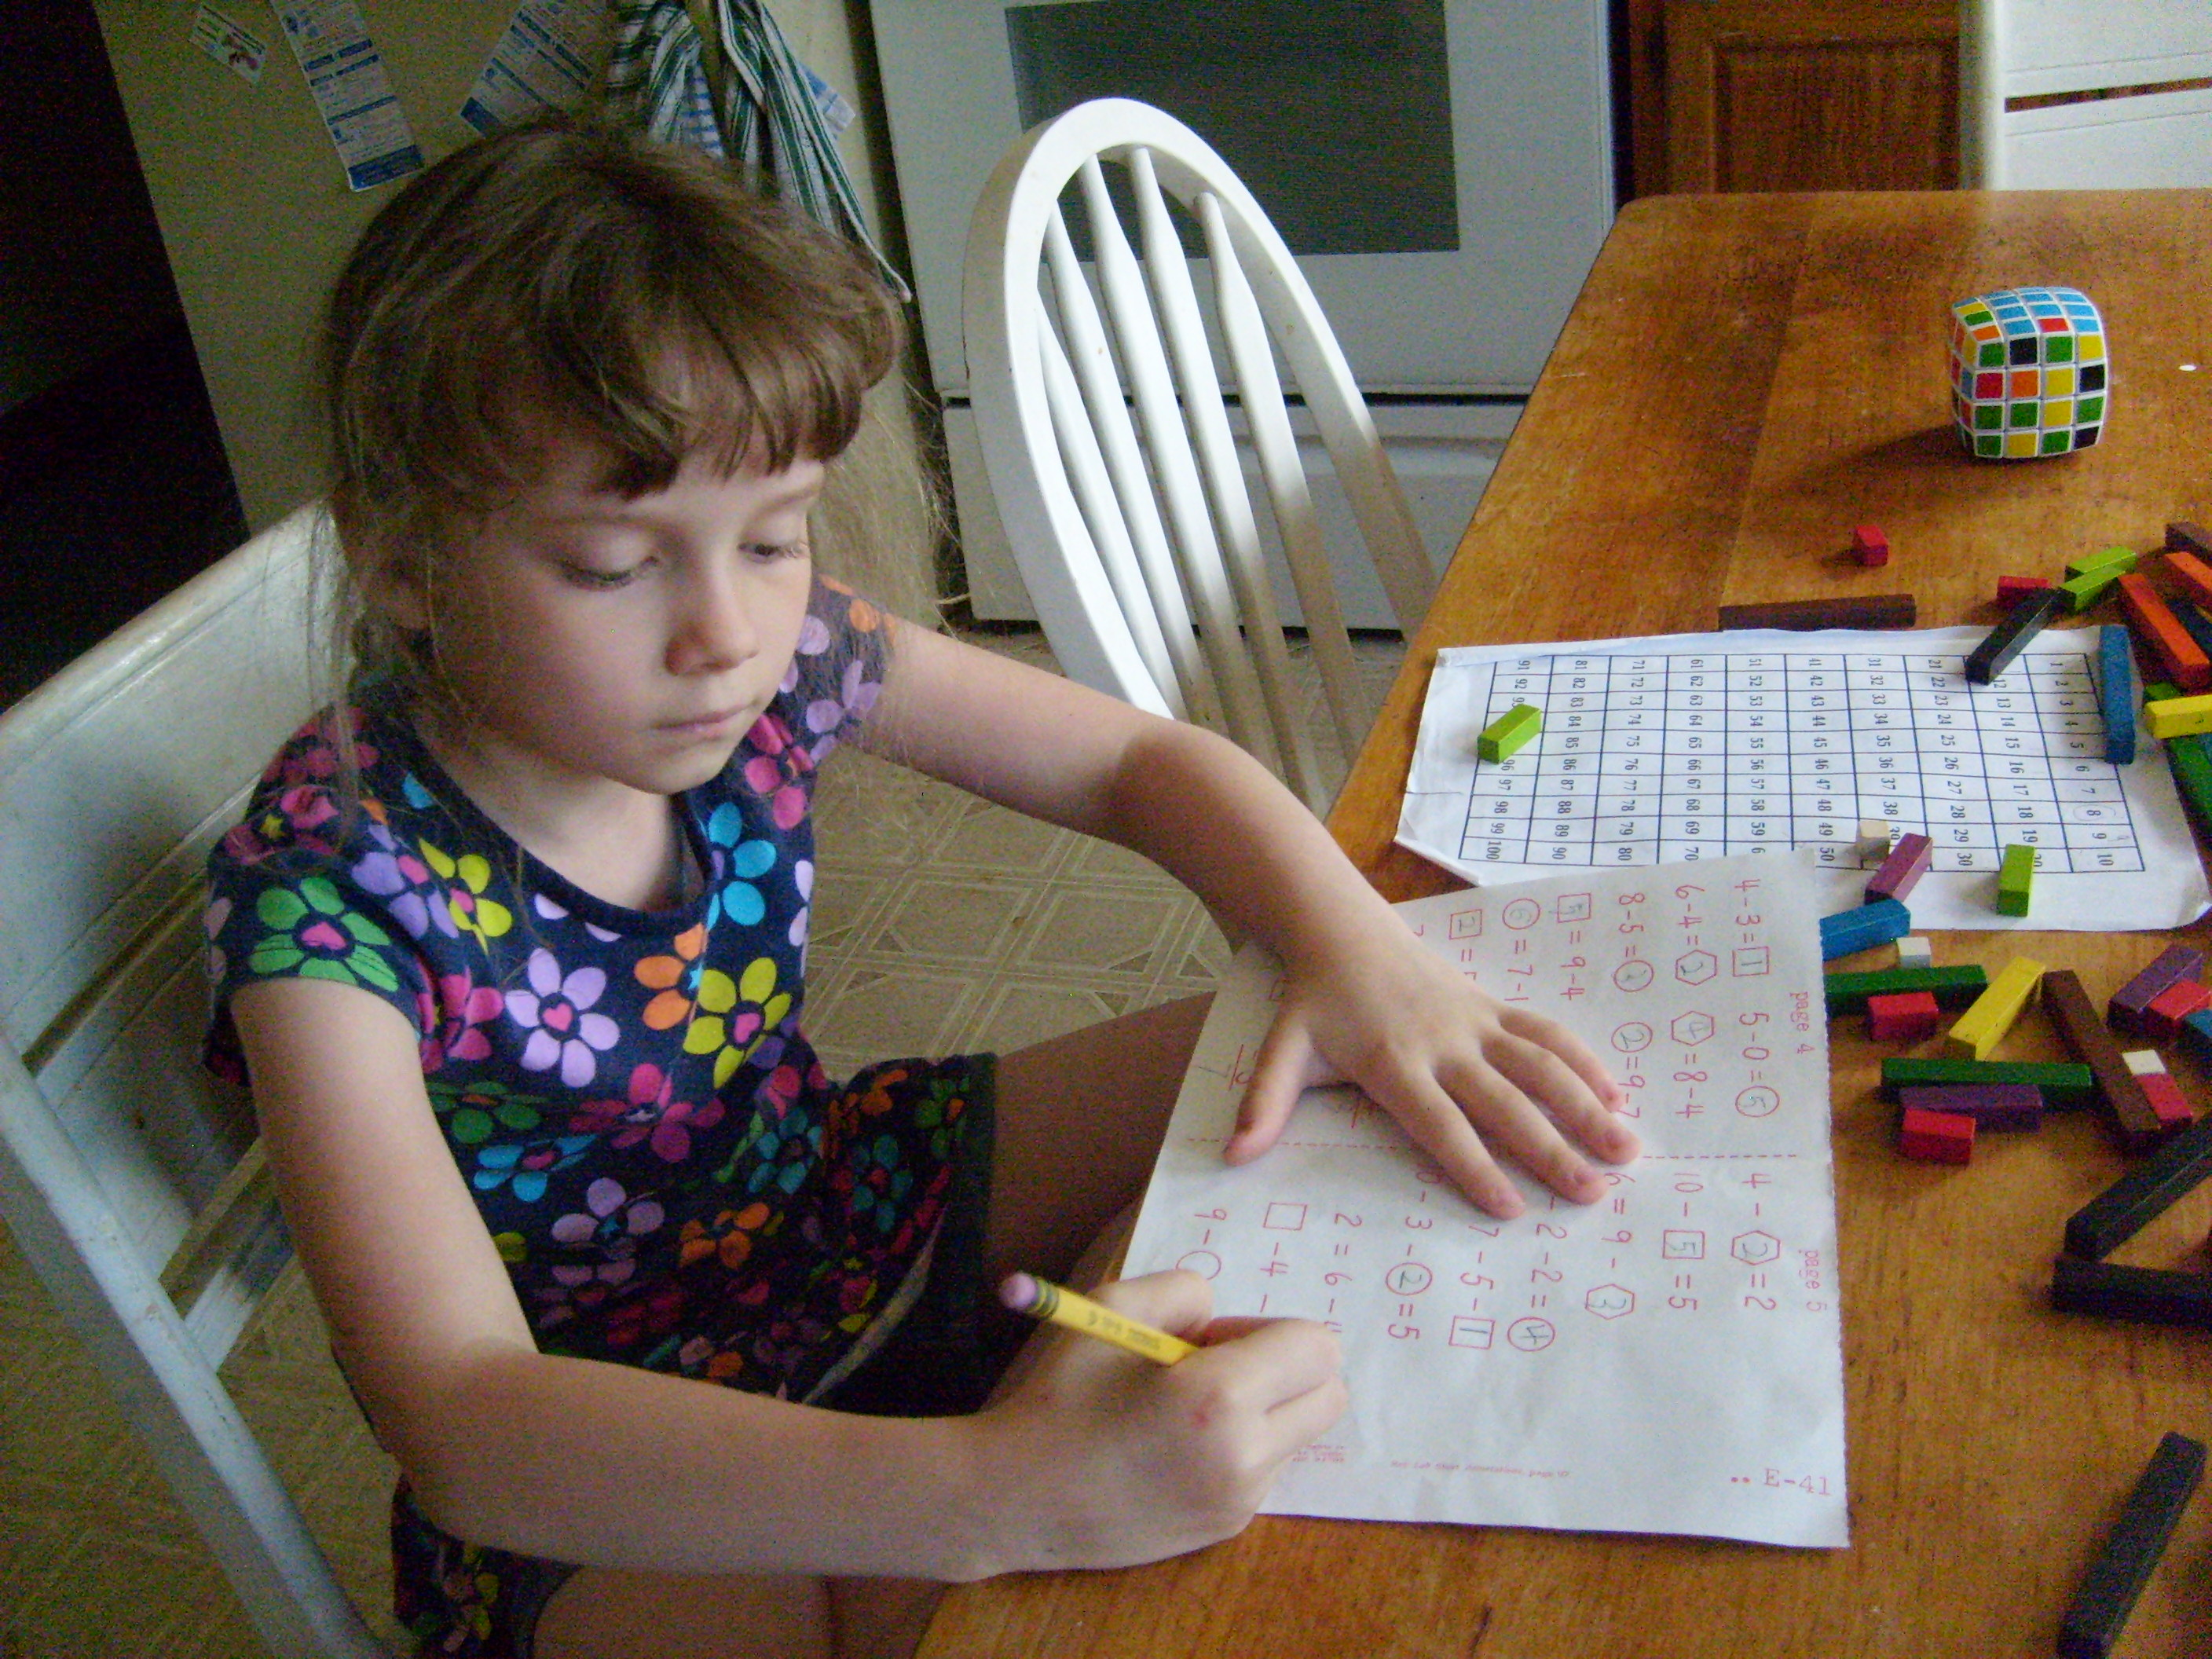 K at the kitchen table, surrounded by math stuff